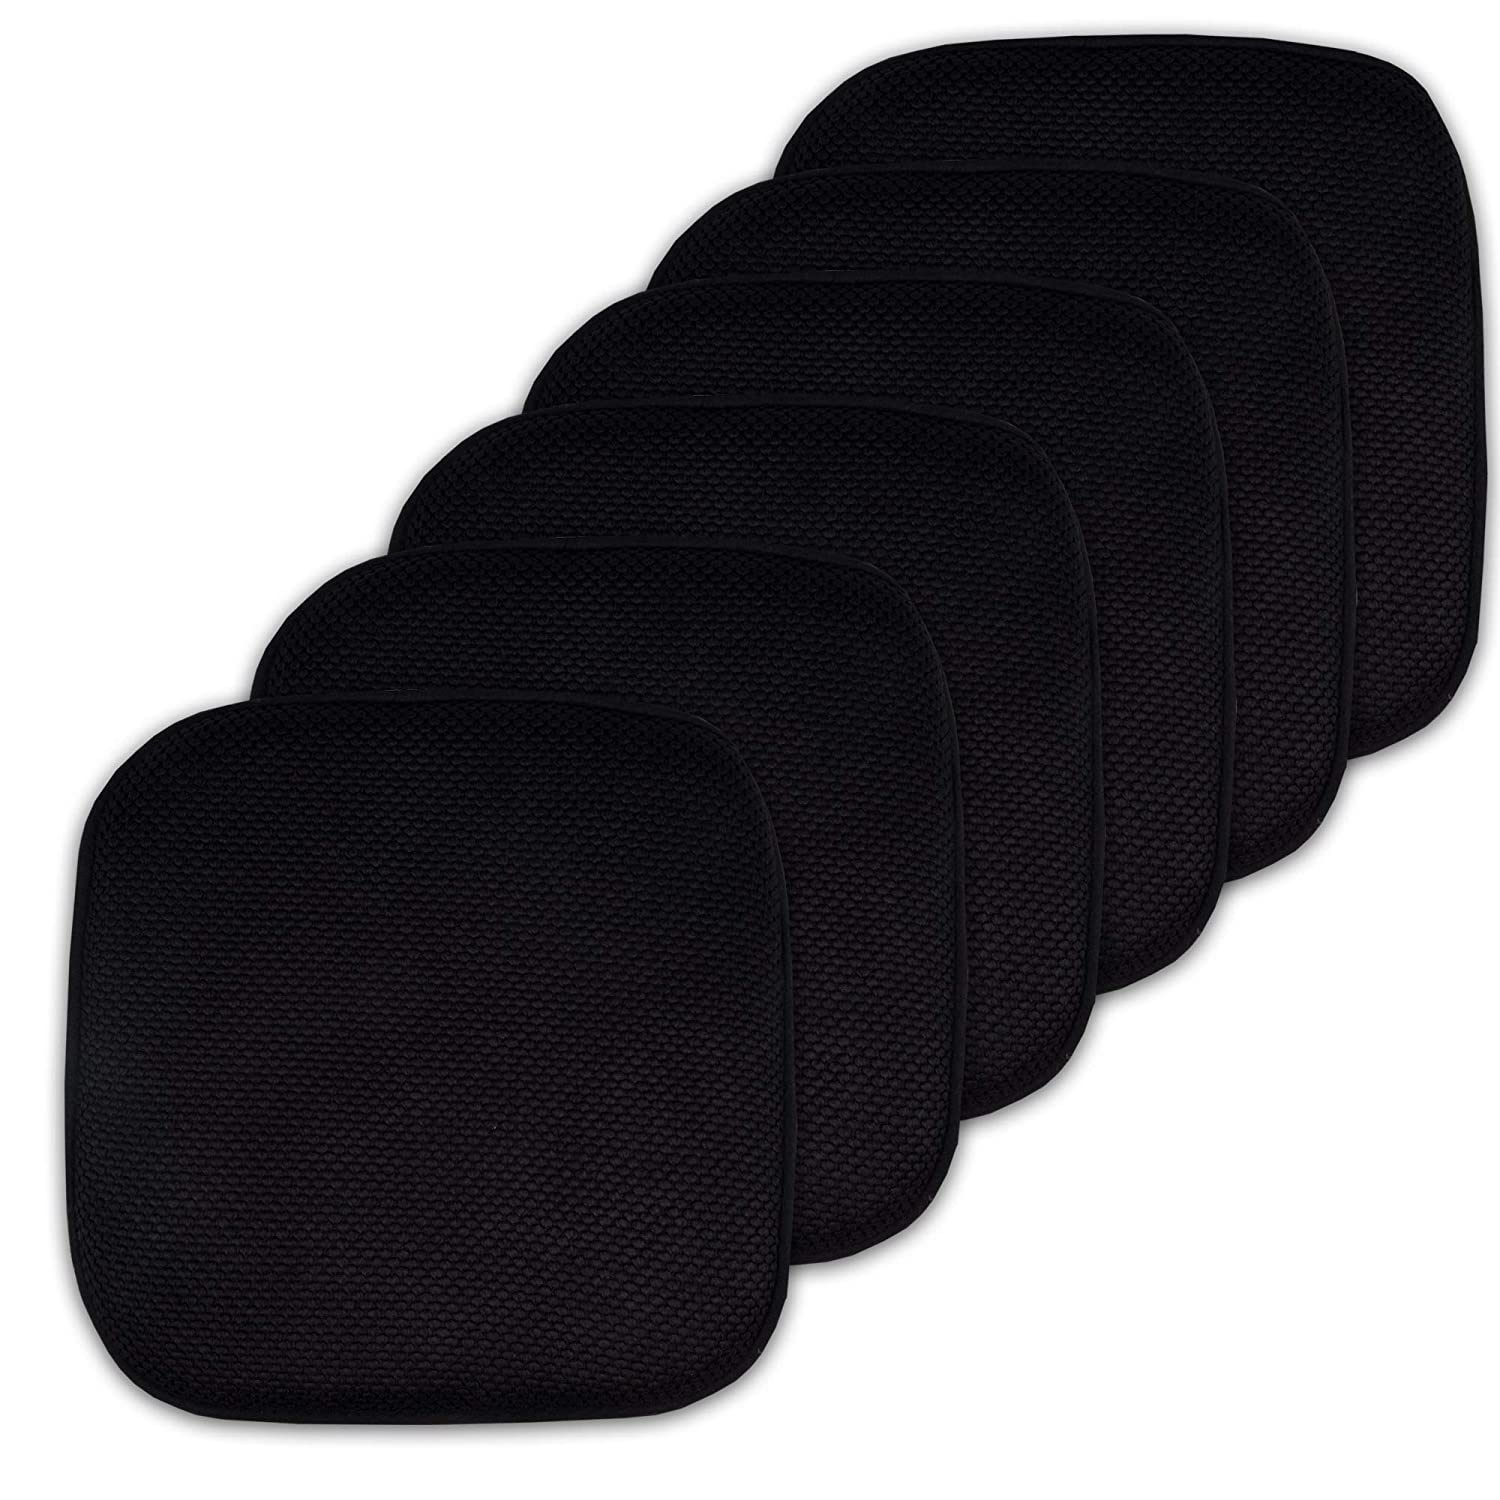 "Sweet Home Collection Cushion Memory Foam Chair Pads Honeycomb Nonslip Back Seat Cover 16"" x 16"" 6 Pack Black"